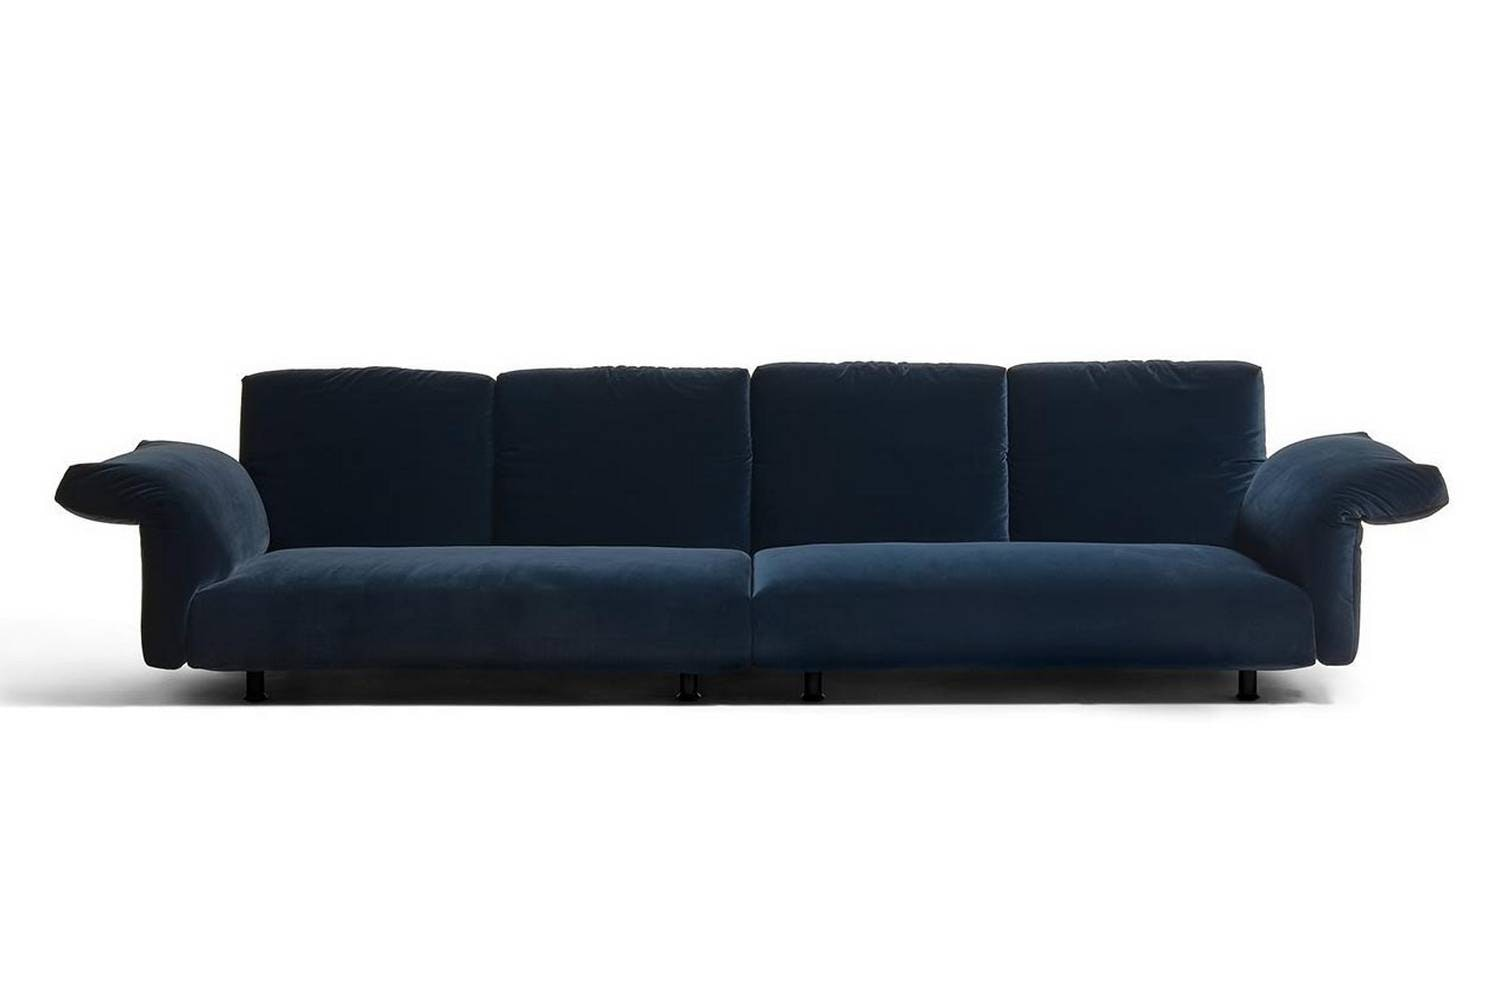 Essential Sofa by Francesco Binfare for Edra